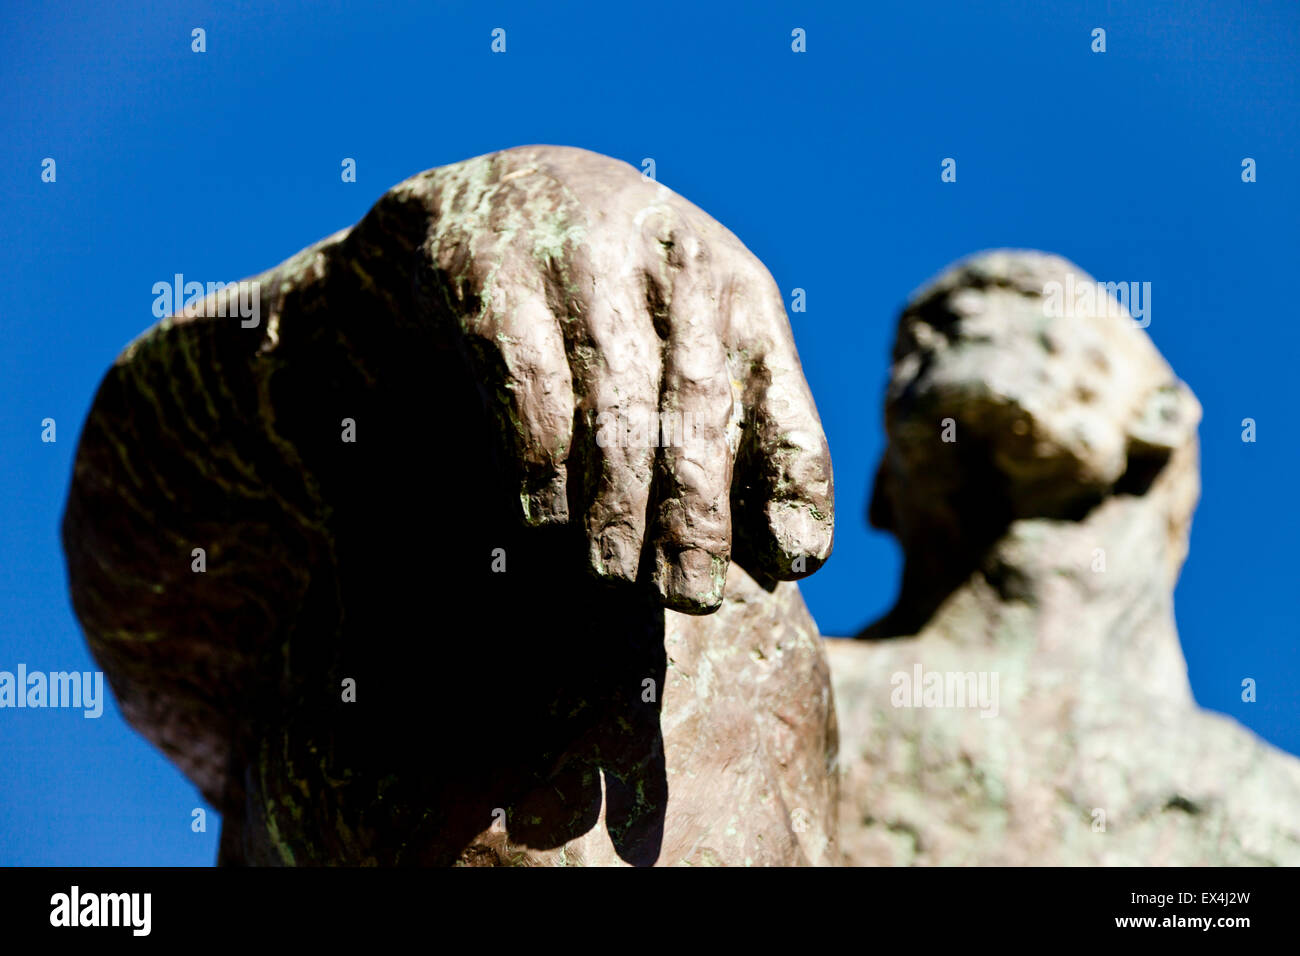 Jan Smuts statue in the Company's Garden, Cape Town, Western Cape, South Africa Stock Photo